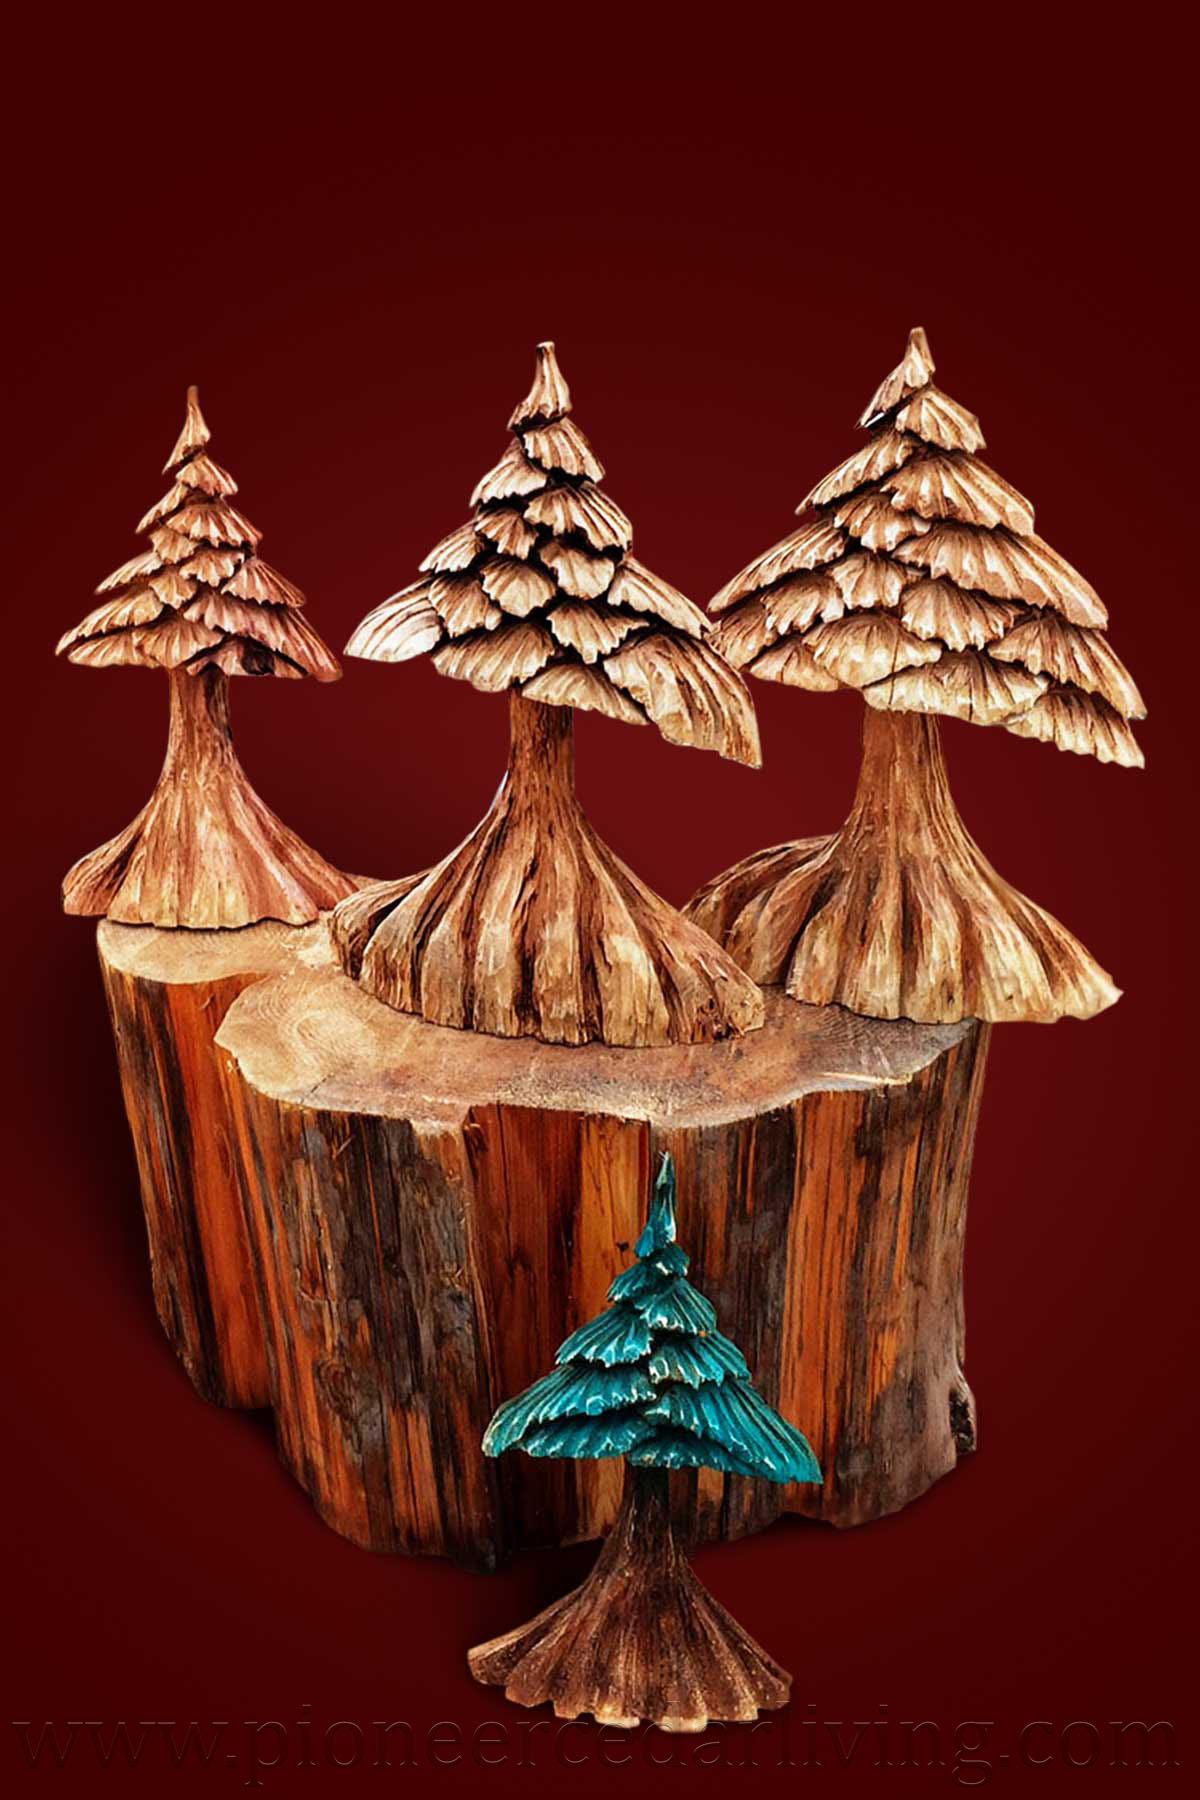 Chainsaw carvings of little timber king trees pioneer